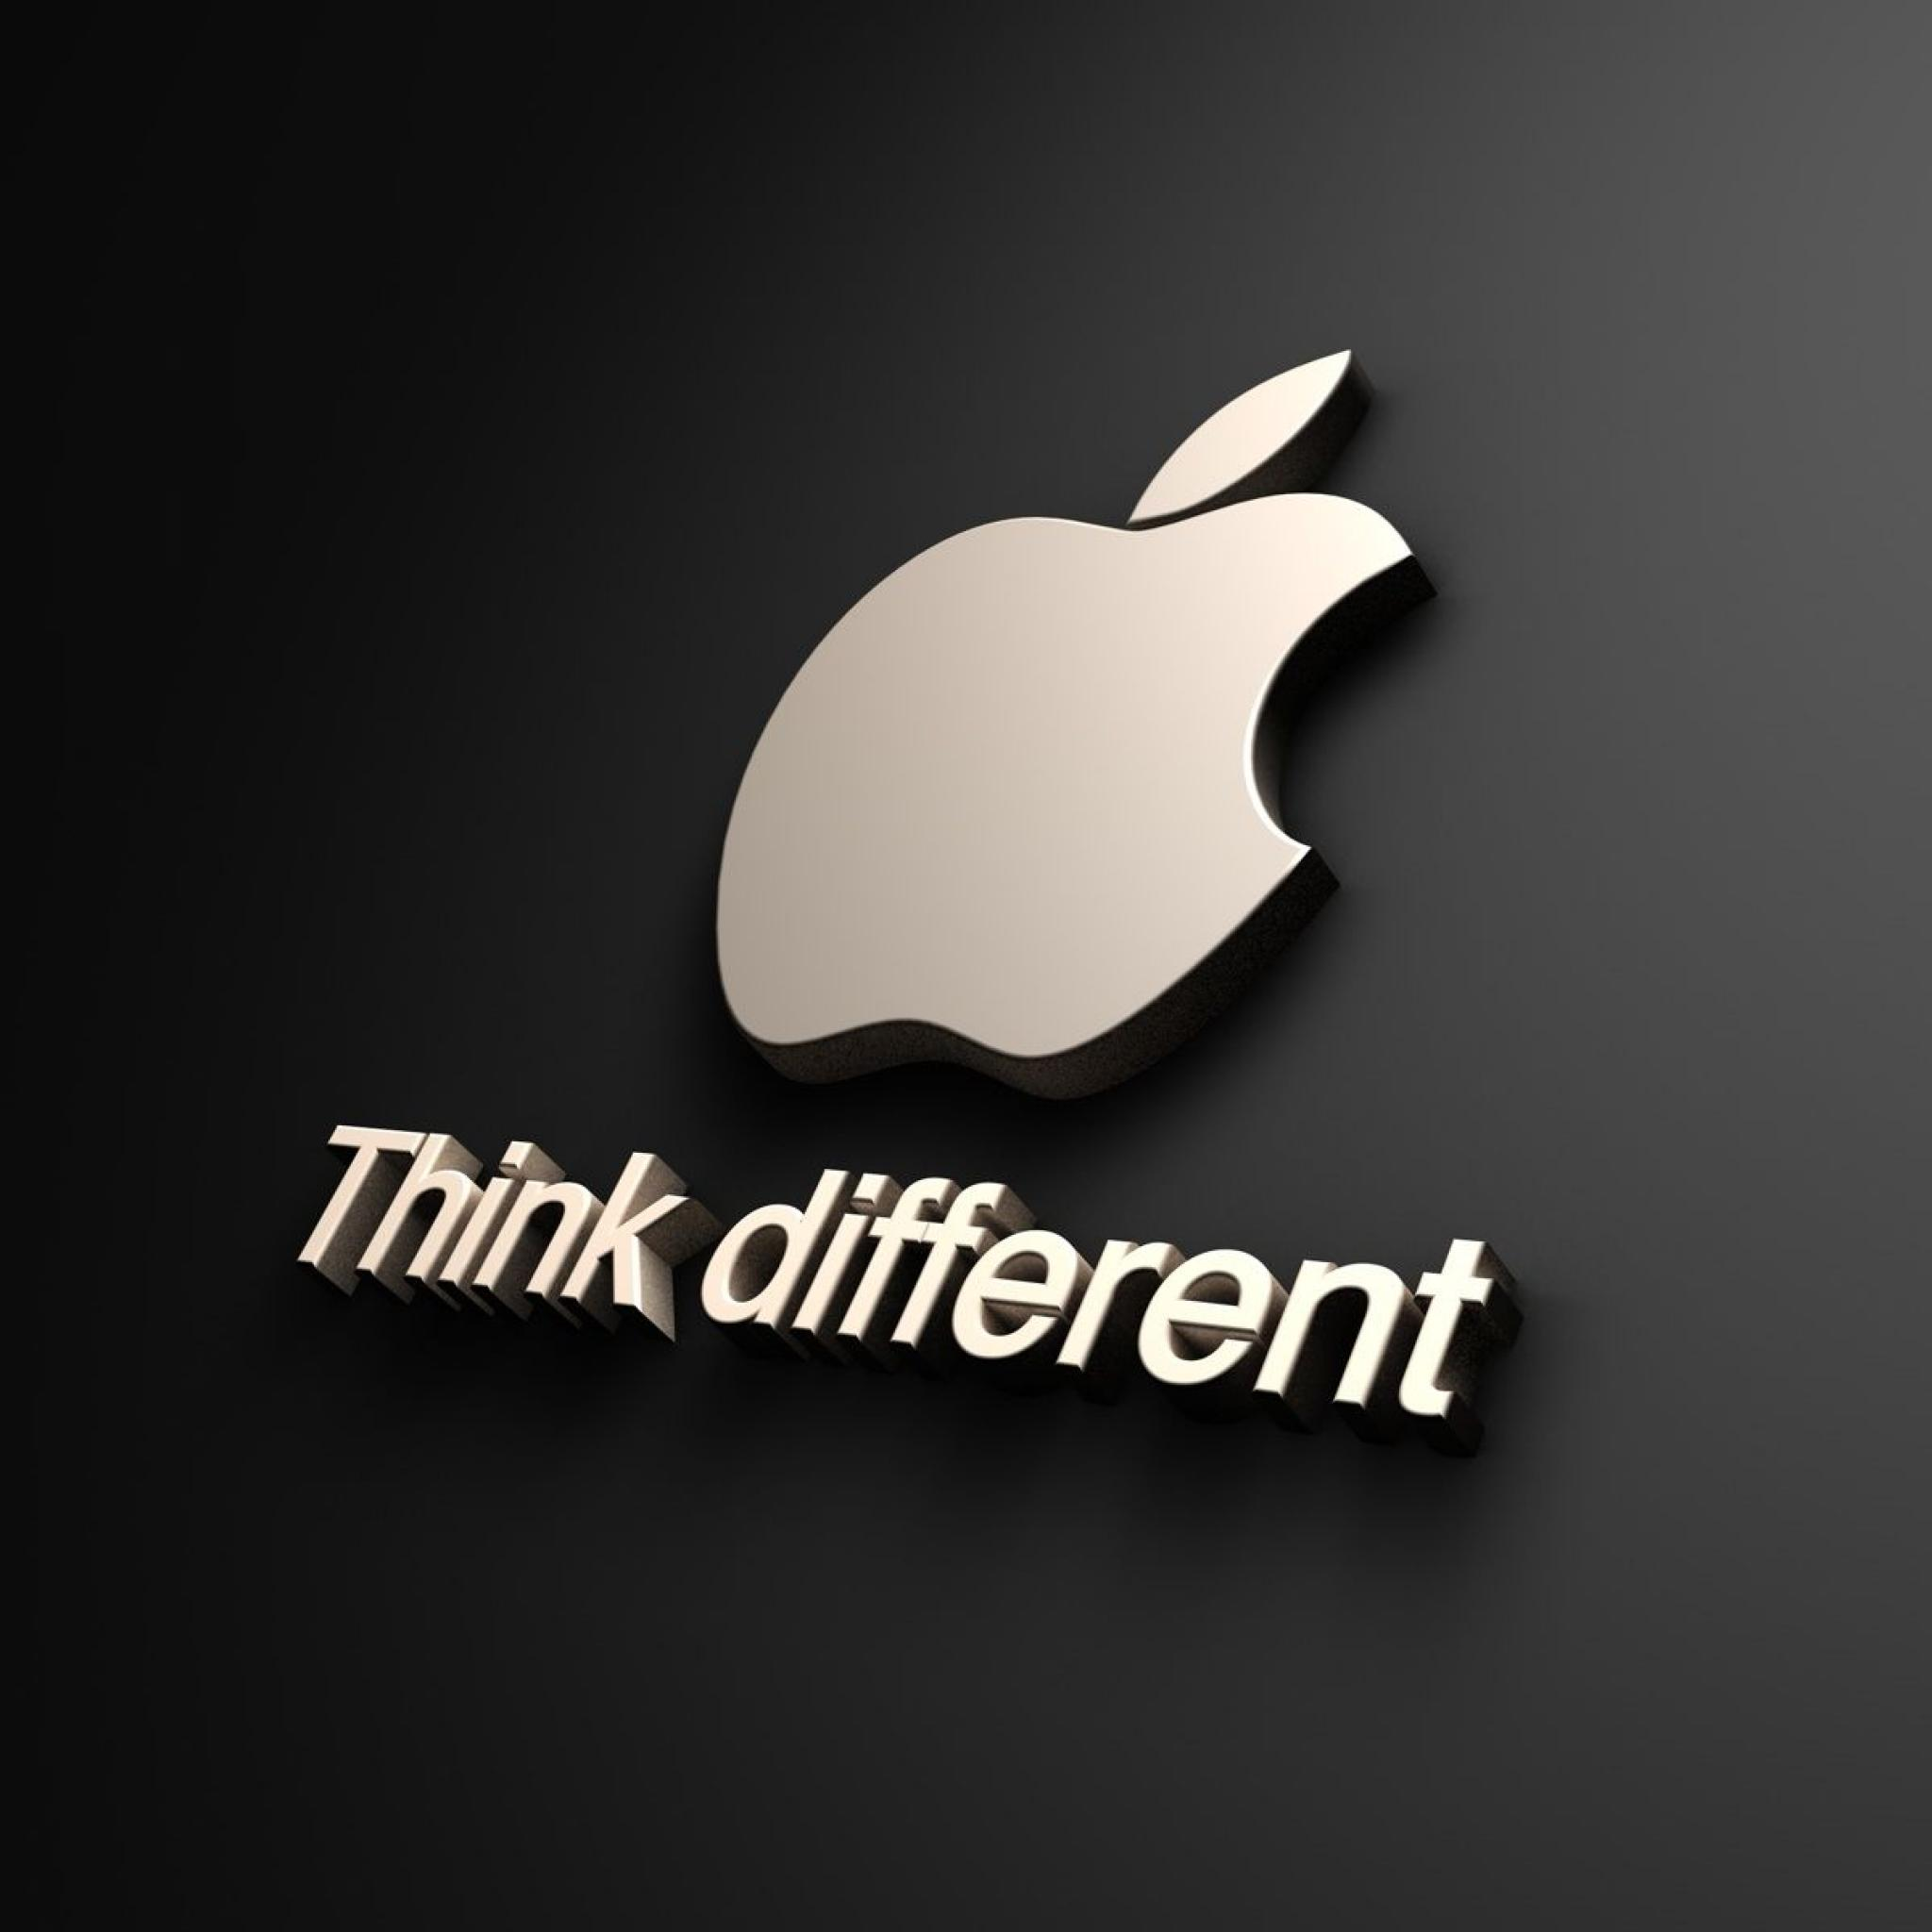 Think-Different-Apple-2048x2048